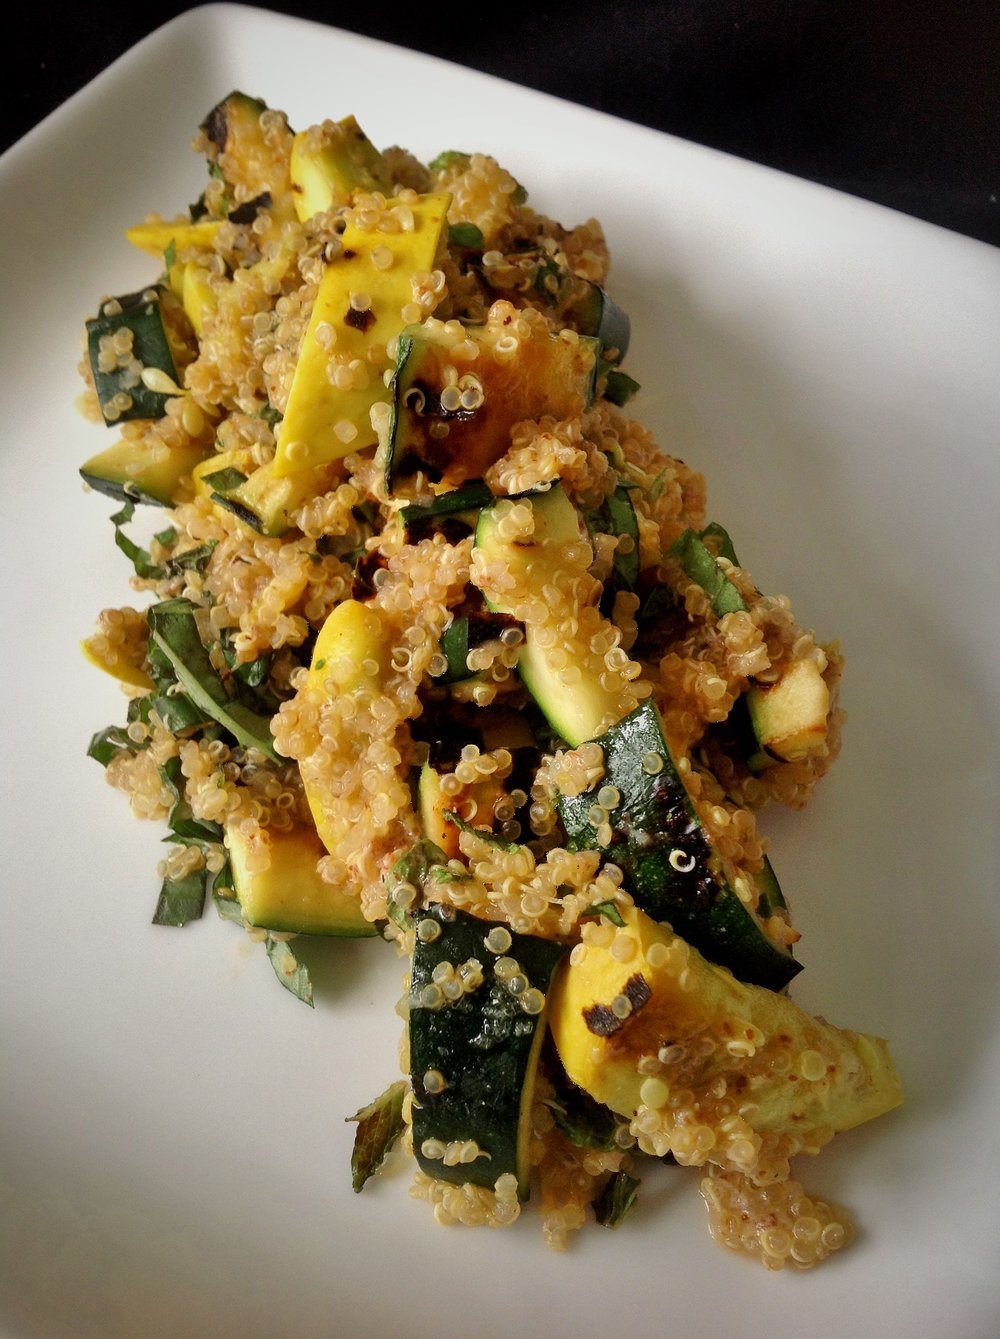 Charred Zucchini and Summer Squash Quinoa - Healthy, Gluten-Free, Oil-Free, Plant-Based, Vegan Grill Salad